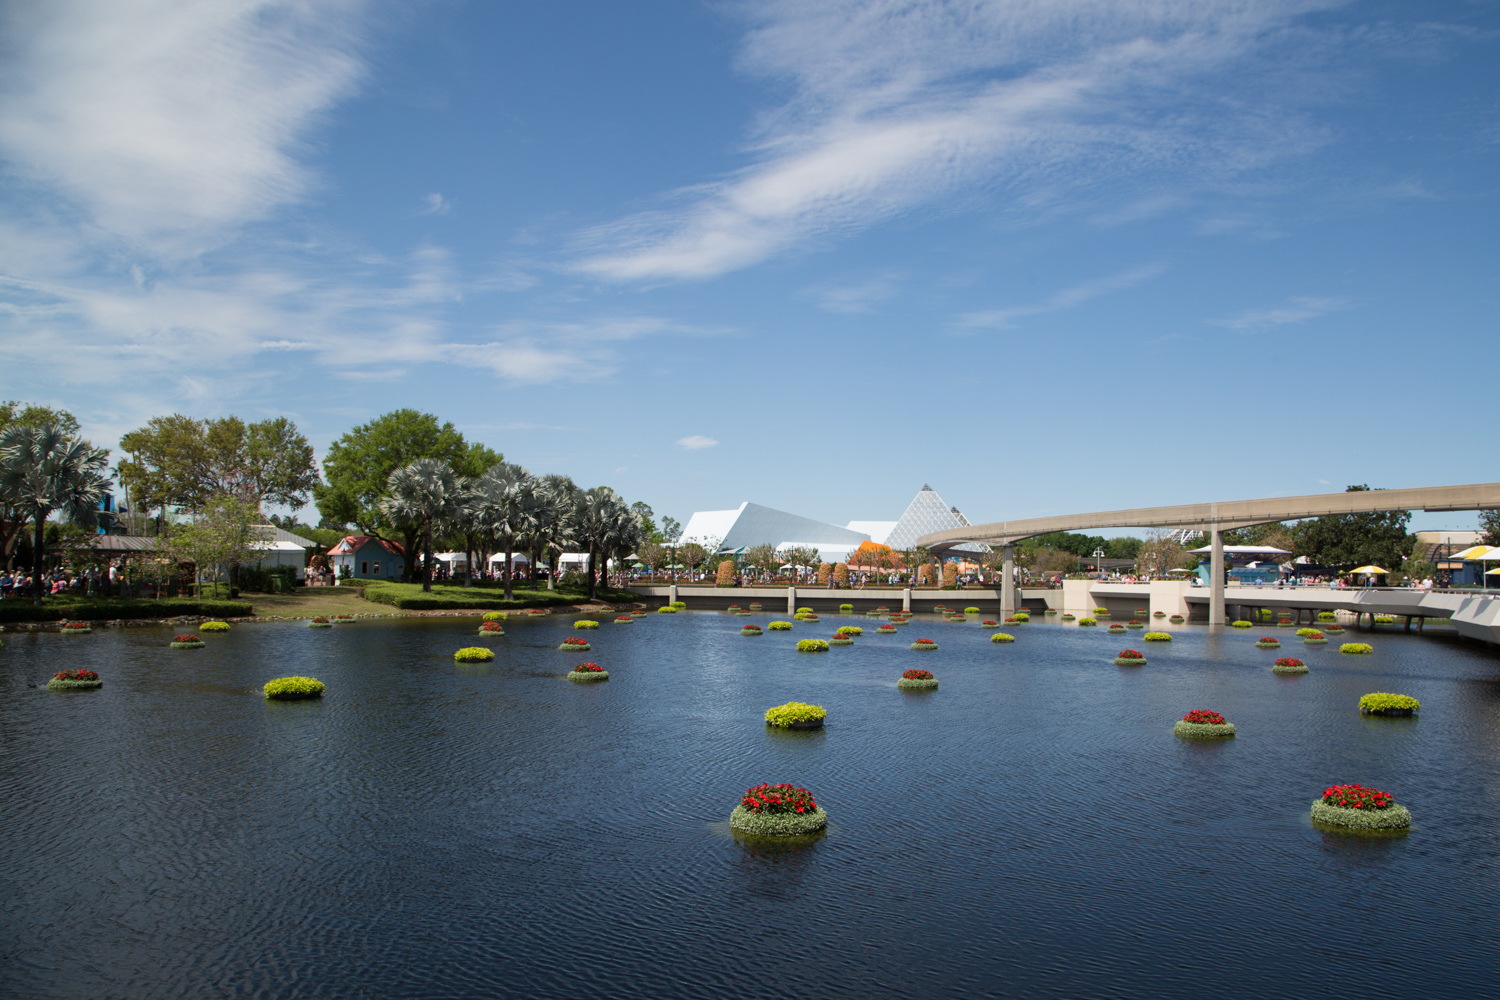 Walt Disney World's Epcot Flower and Garden Festival 2016